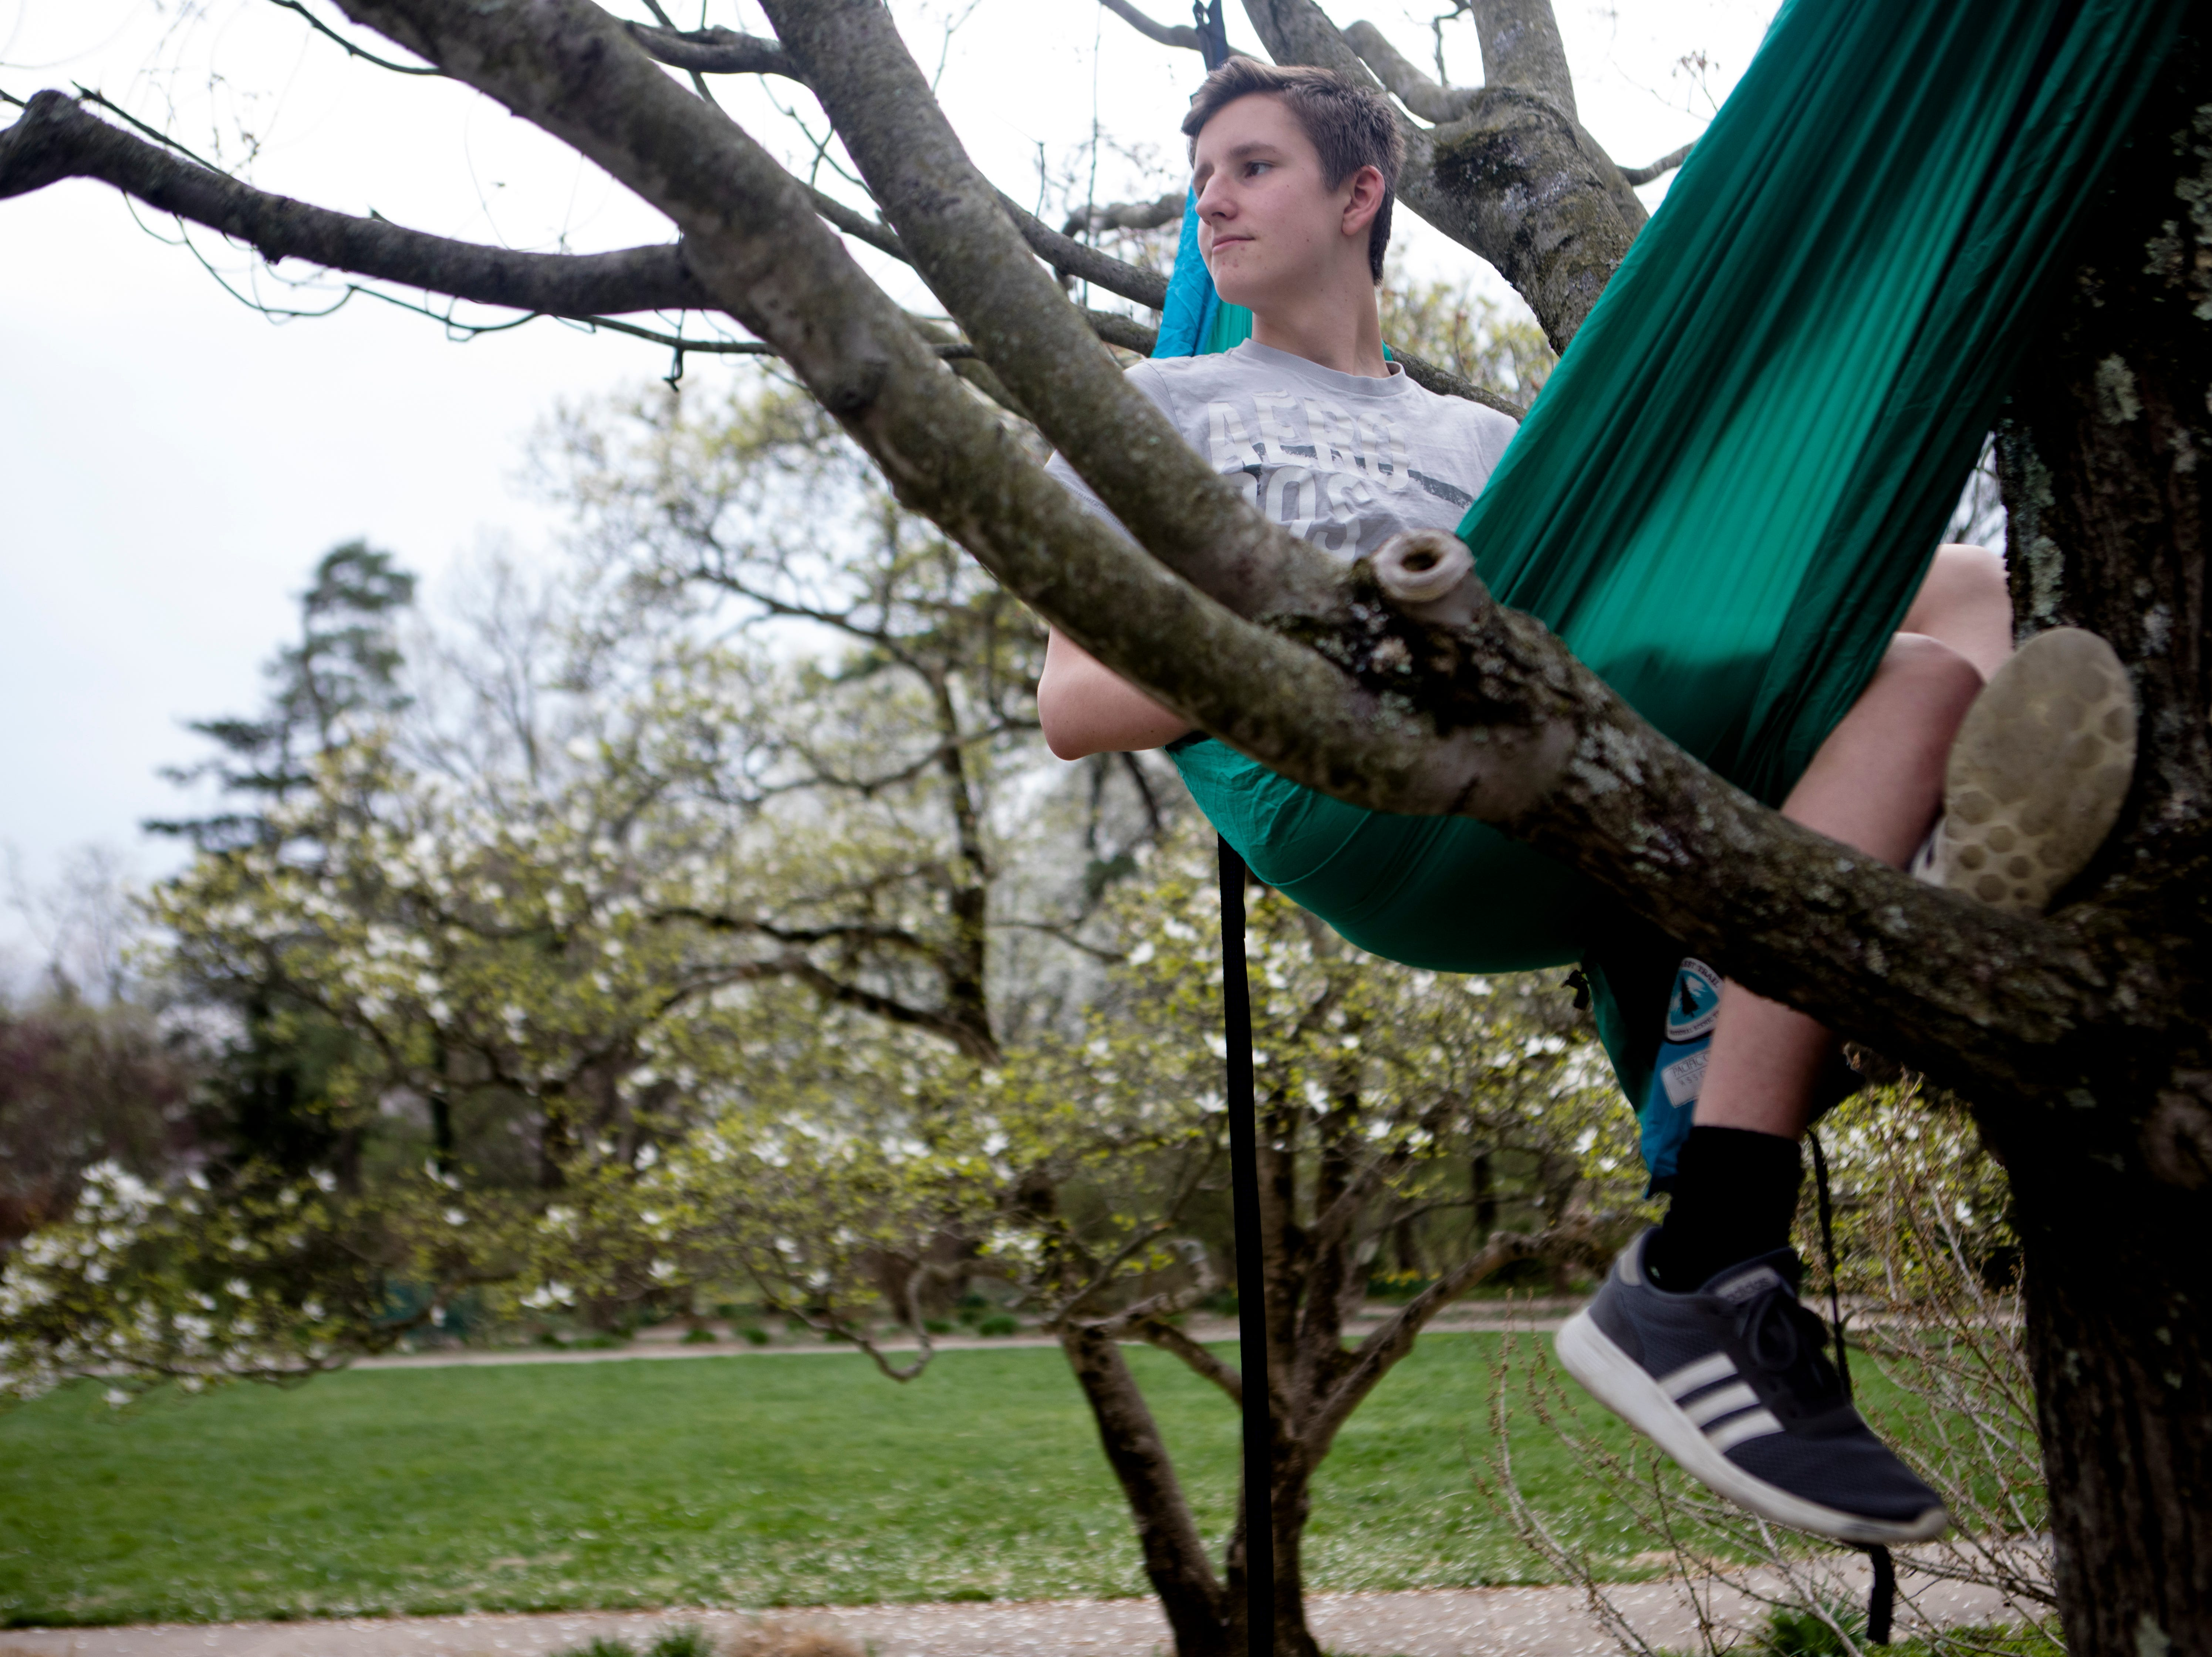 Drew Schirmer, 15, sits in a hammock at Ault Park in Hyde Park on Wednesday, April 10, 2019.